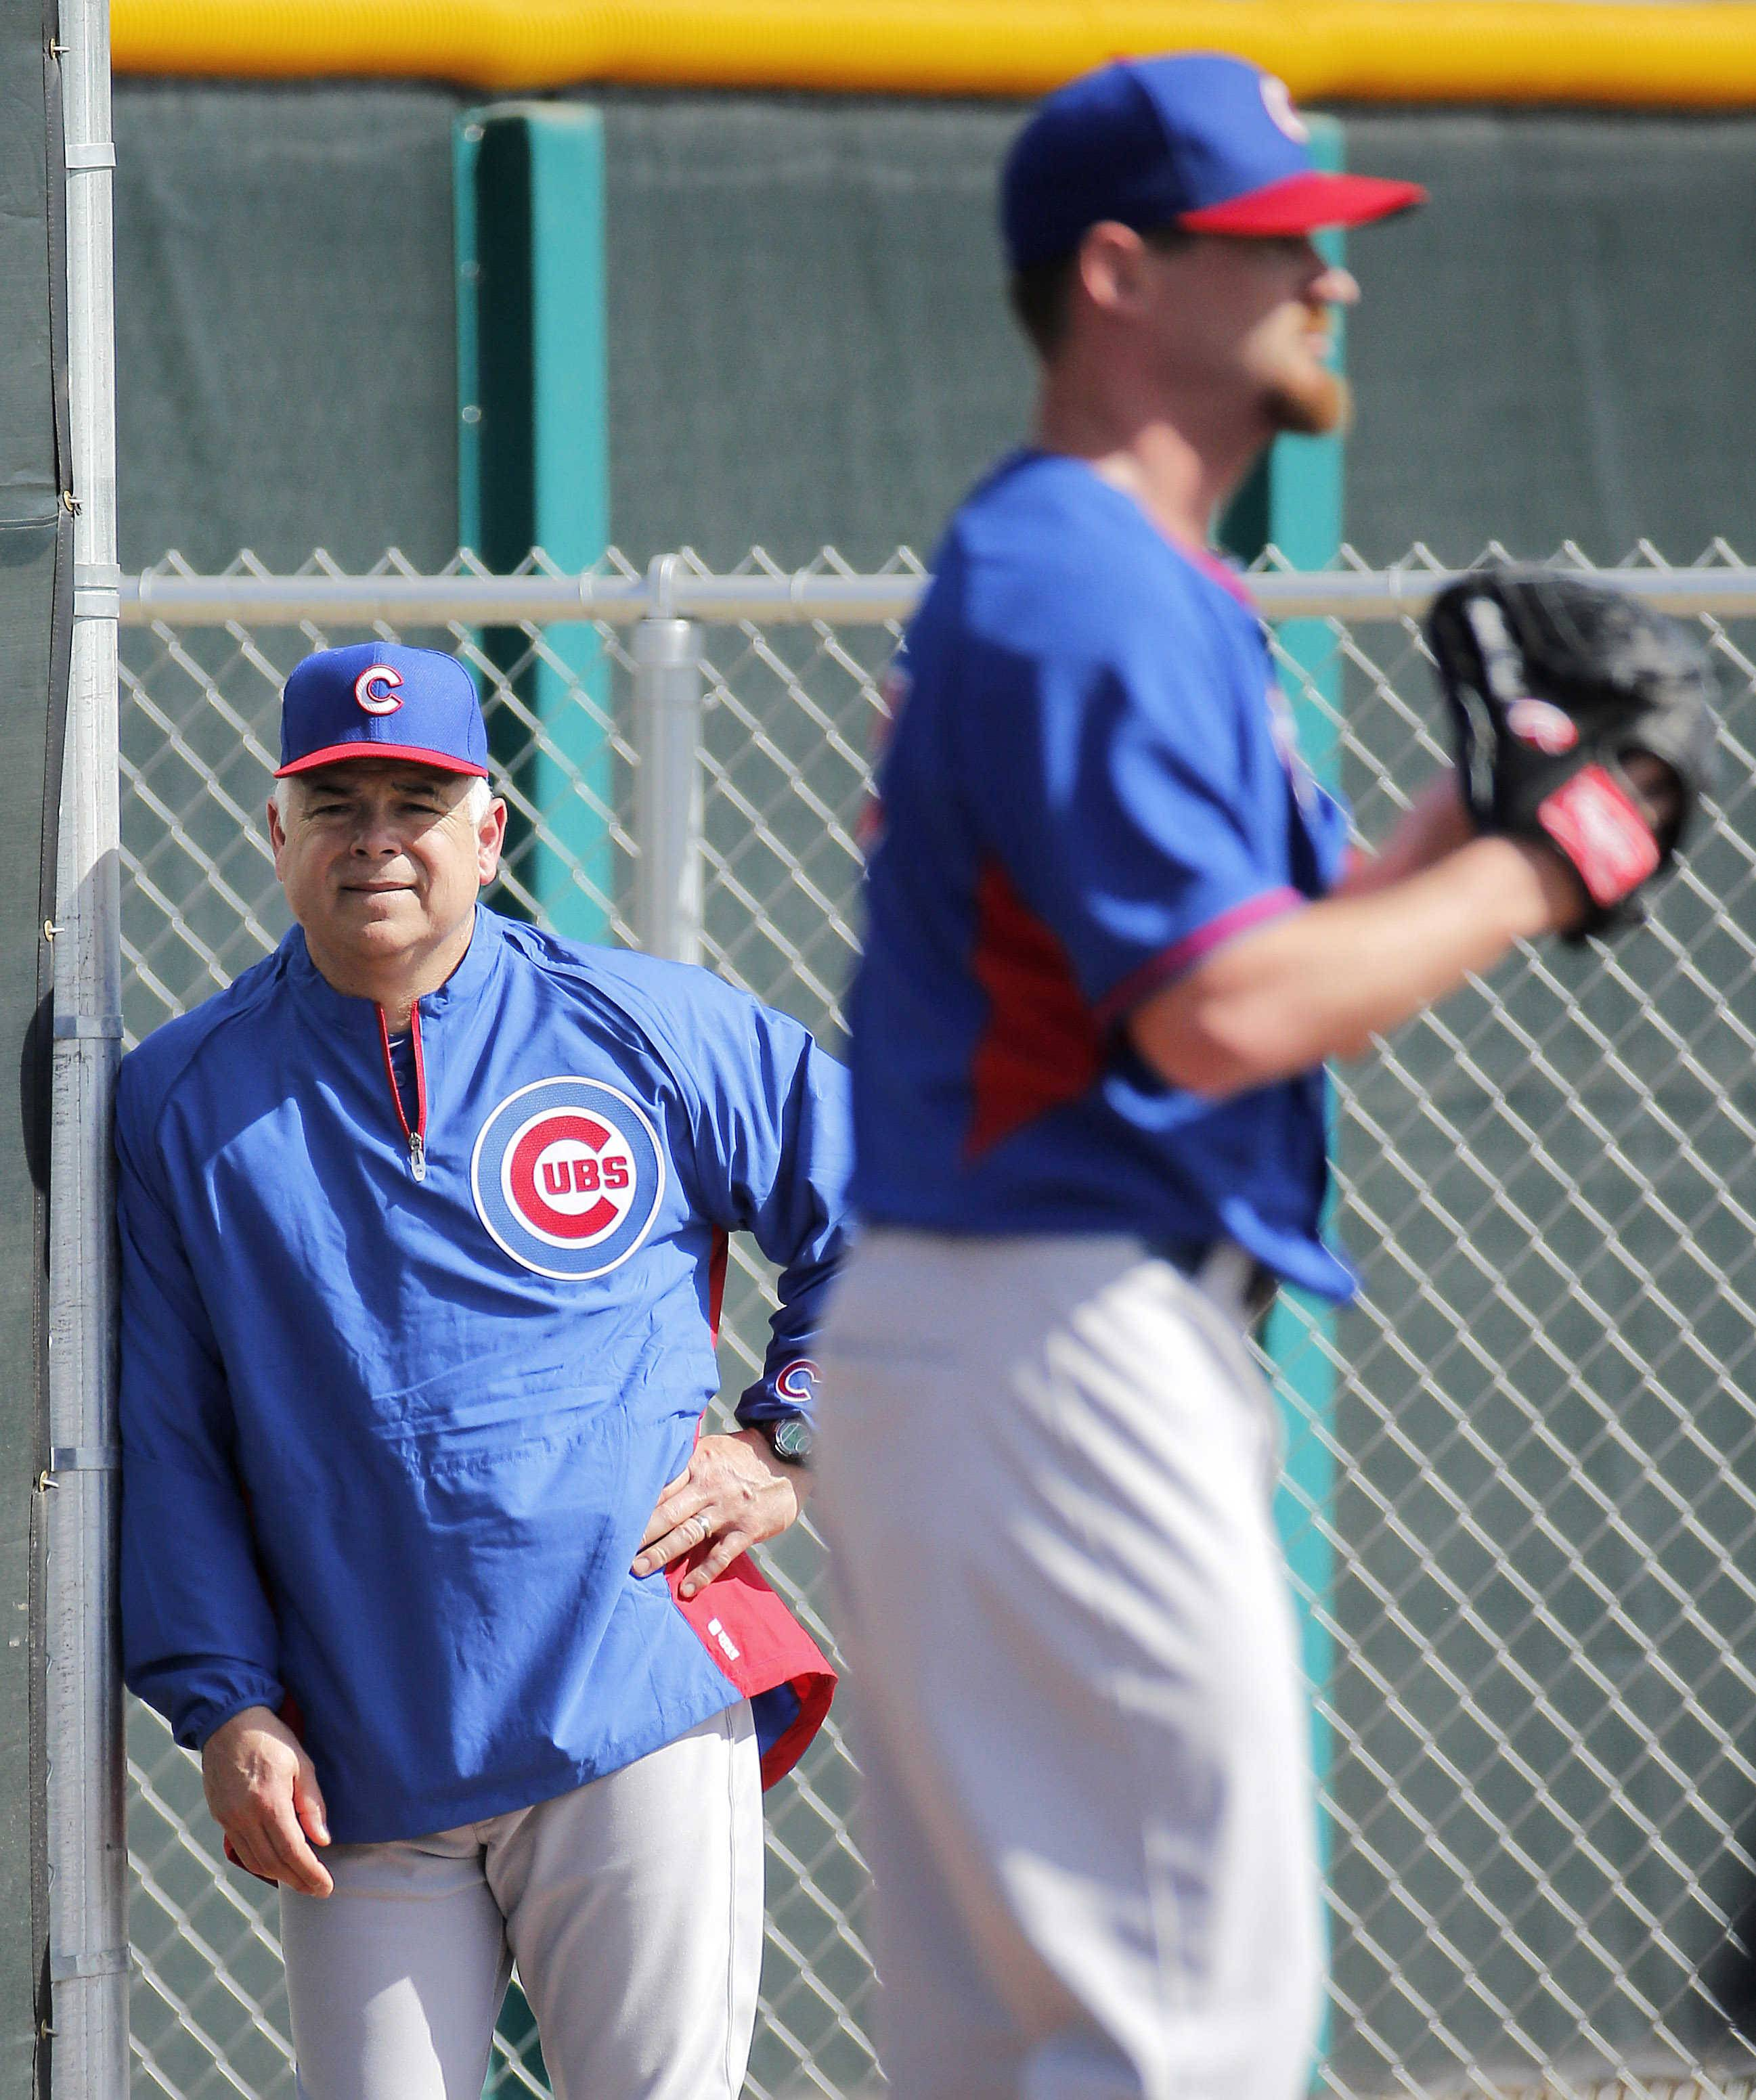 Chicago Cubs manager Rick Renteria, left, watches pitcher Travis Wood throw during the team's first spring training baseball practice in February in Mesa, Ariz.